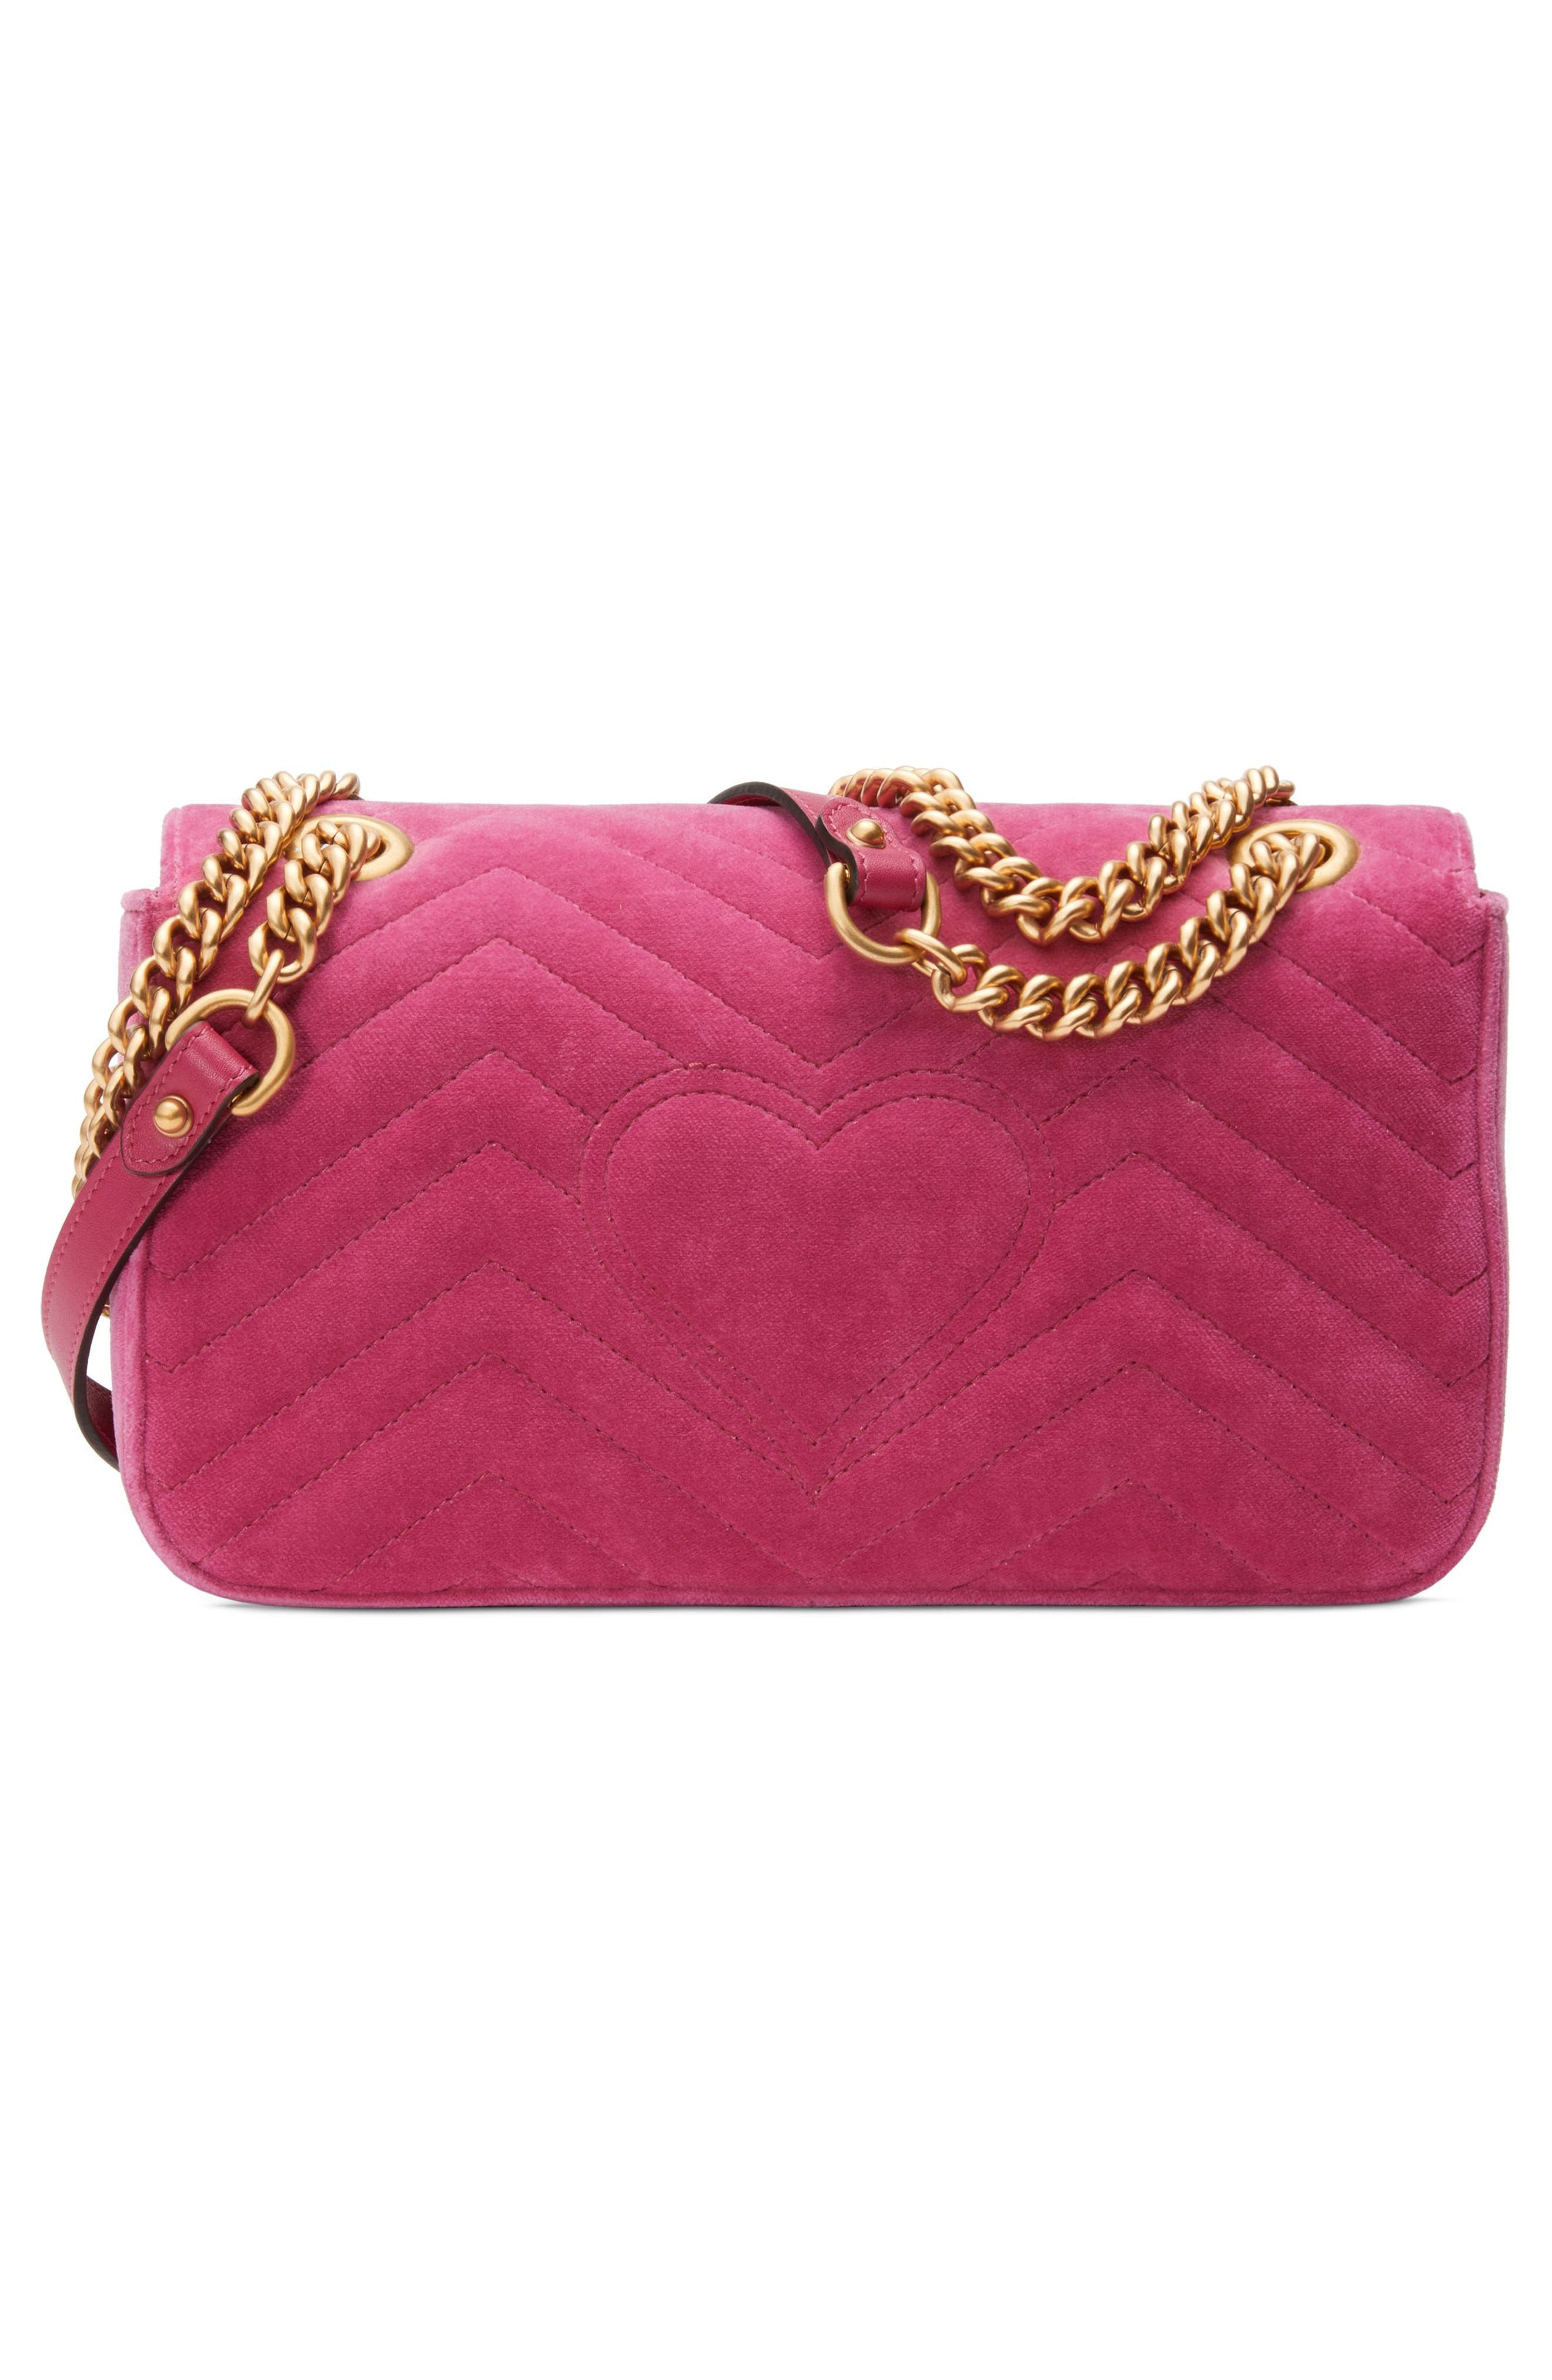 Small GG Marmont 2.0 Matelassé Velvet Shoulder Bag,                             Alternate thumbnail 2, color,                             Raspberry/ Raspberry Multi